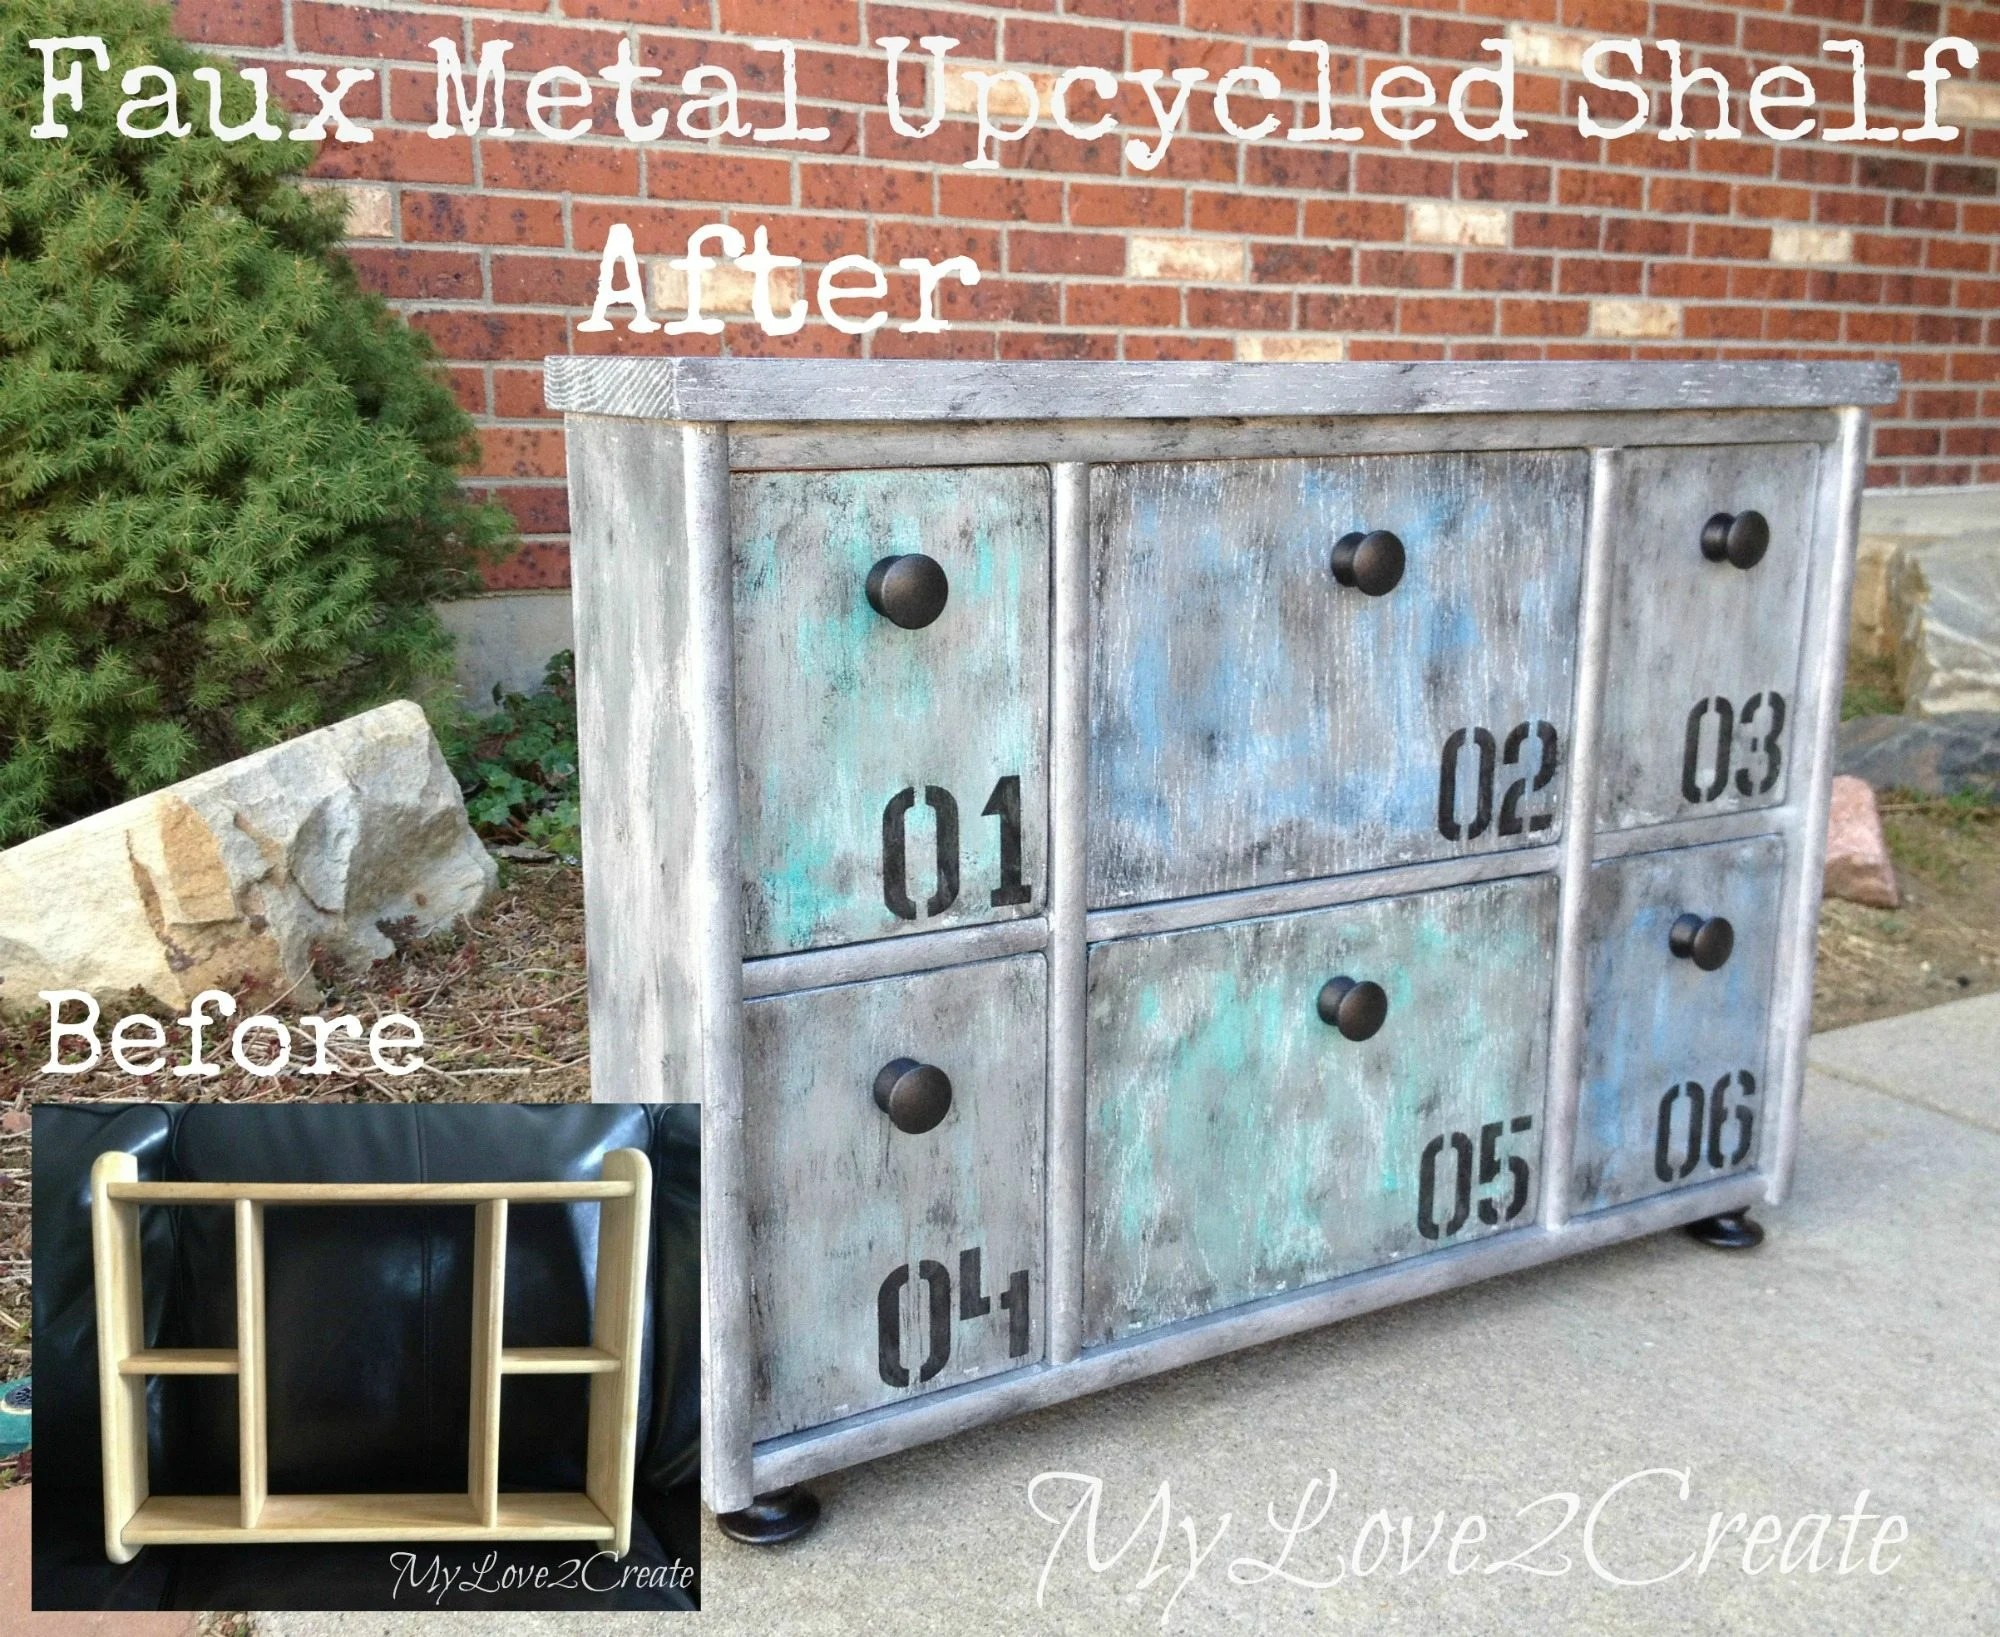 Faux Metal Finish Upcycled Shelf - My Repurposed Life®